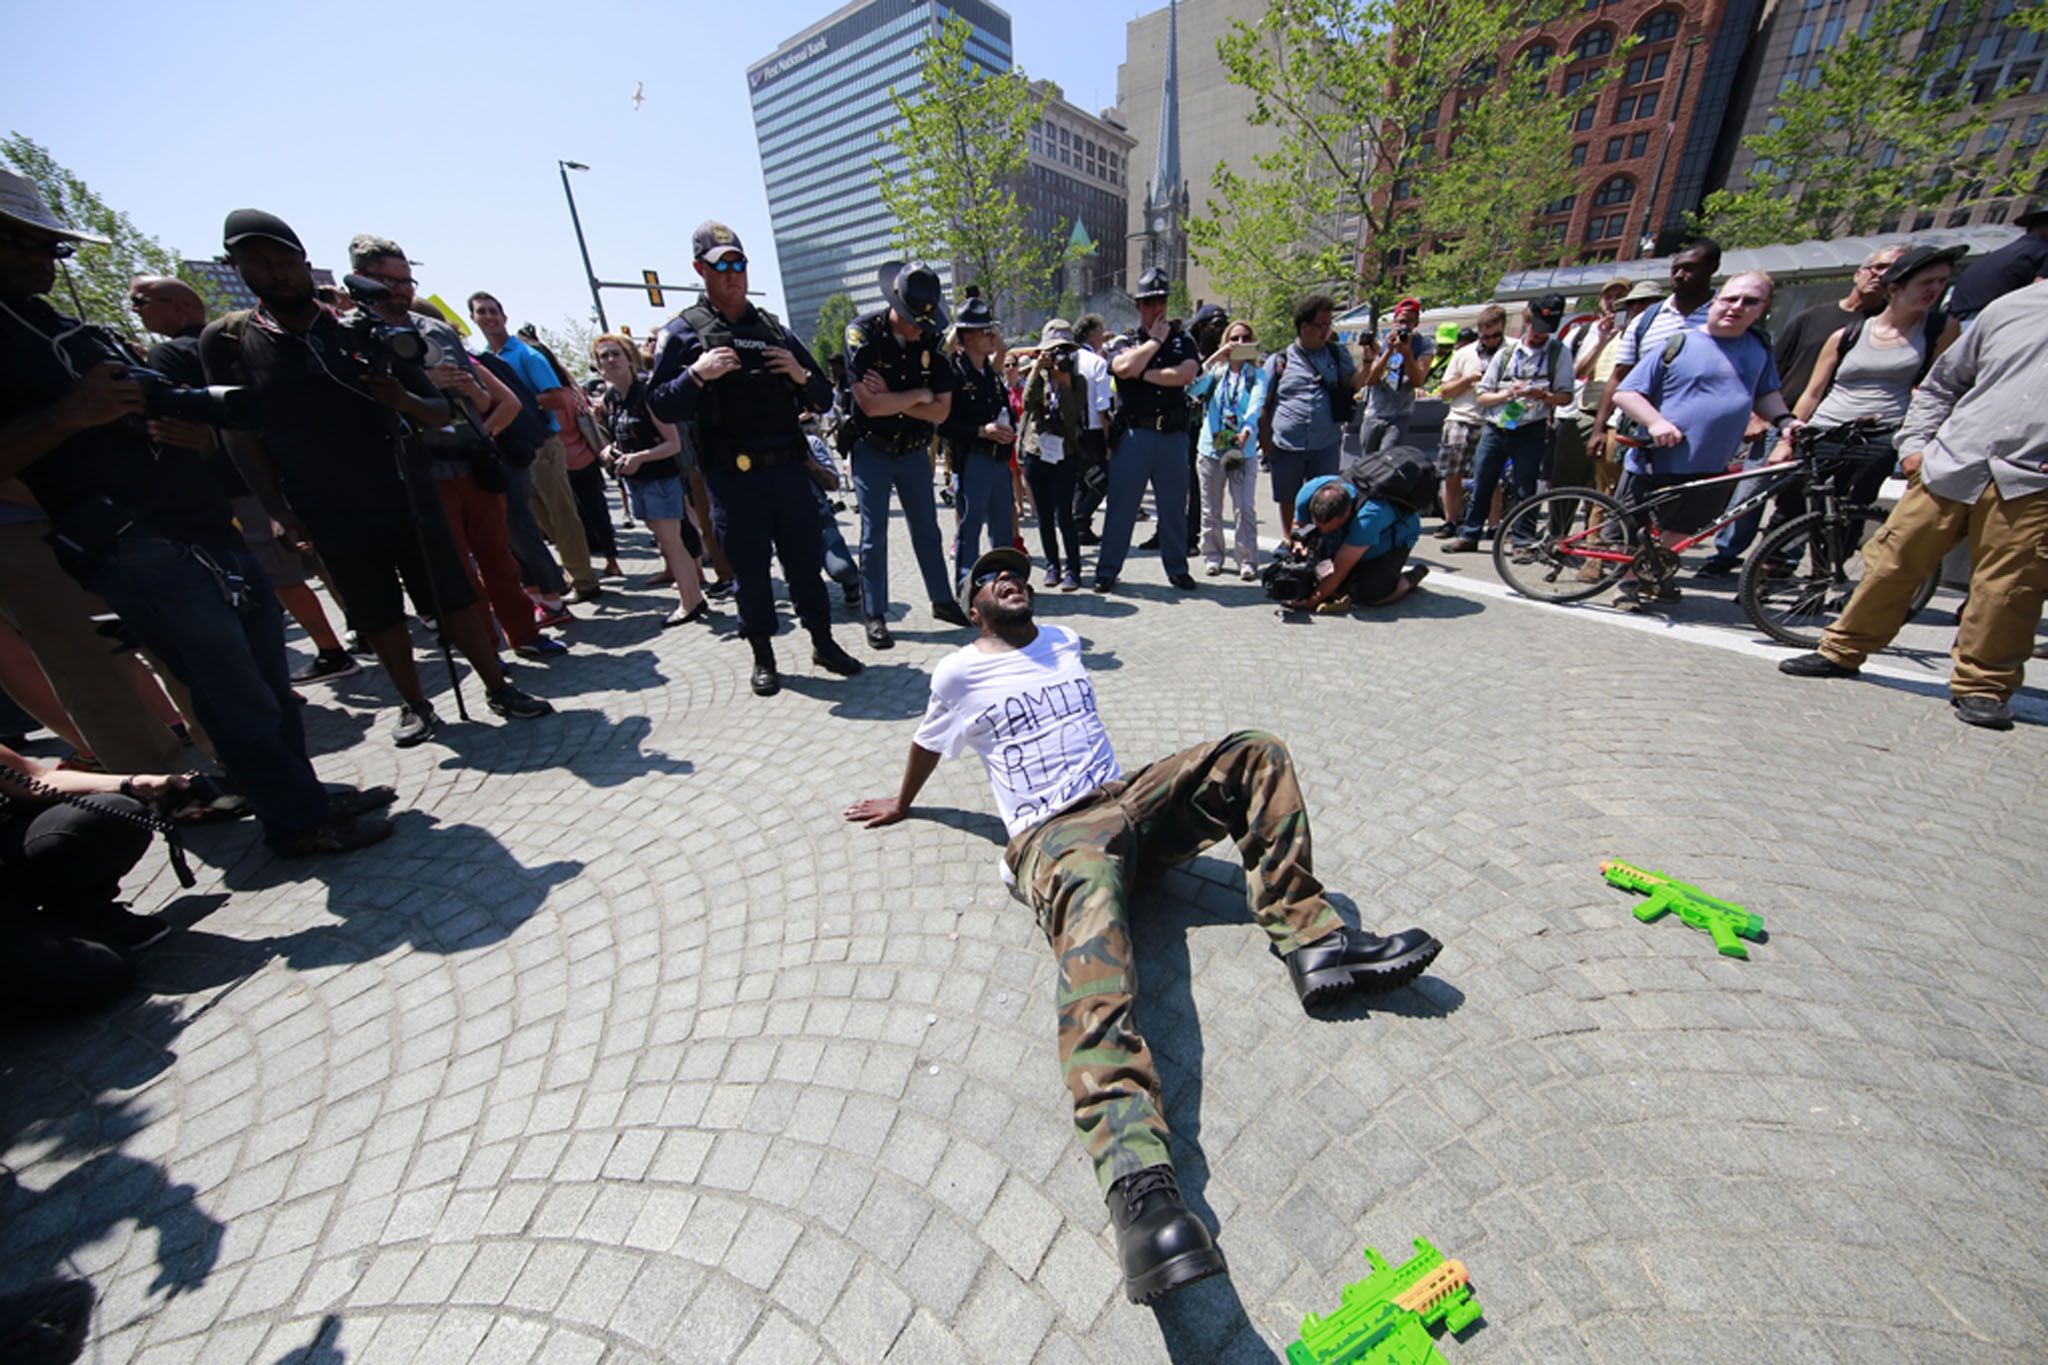 A protester acts out the killing of Tamir Rice in the Public Square during the RNC in Cleveland, Ohio on Tuesday, July 19, 2016.